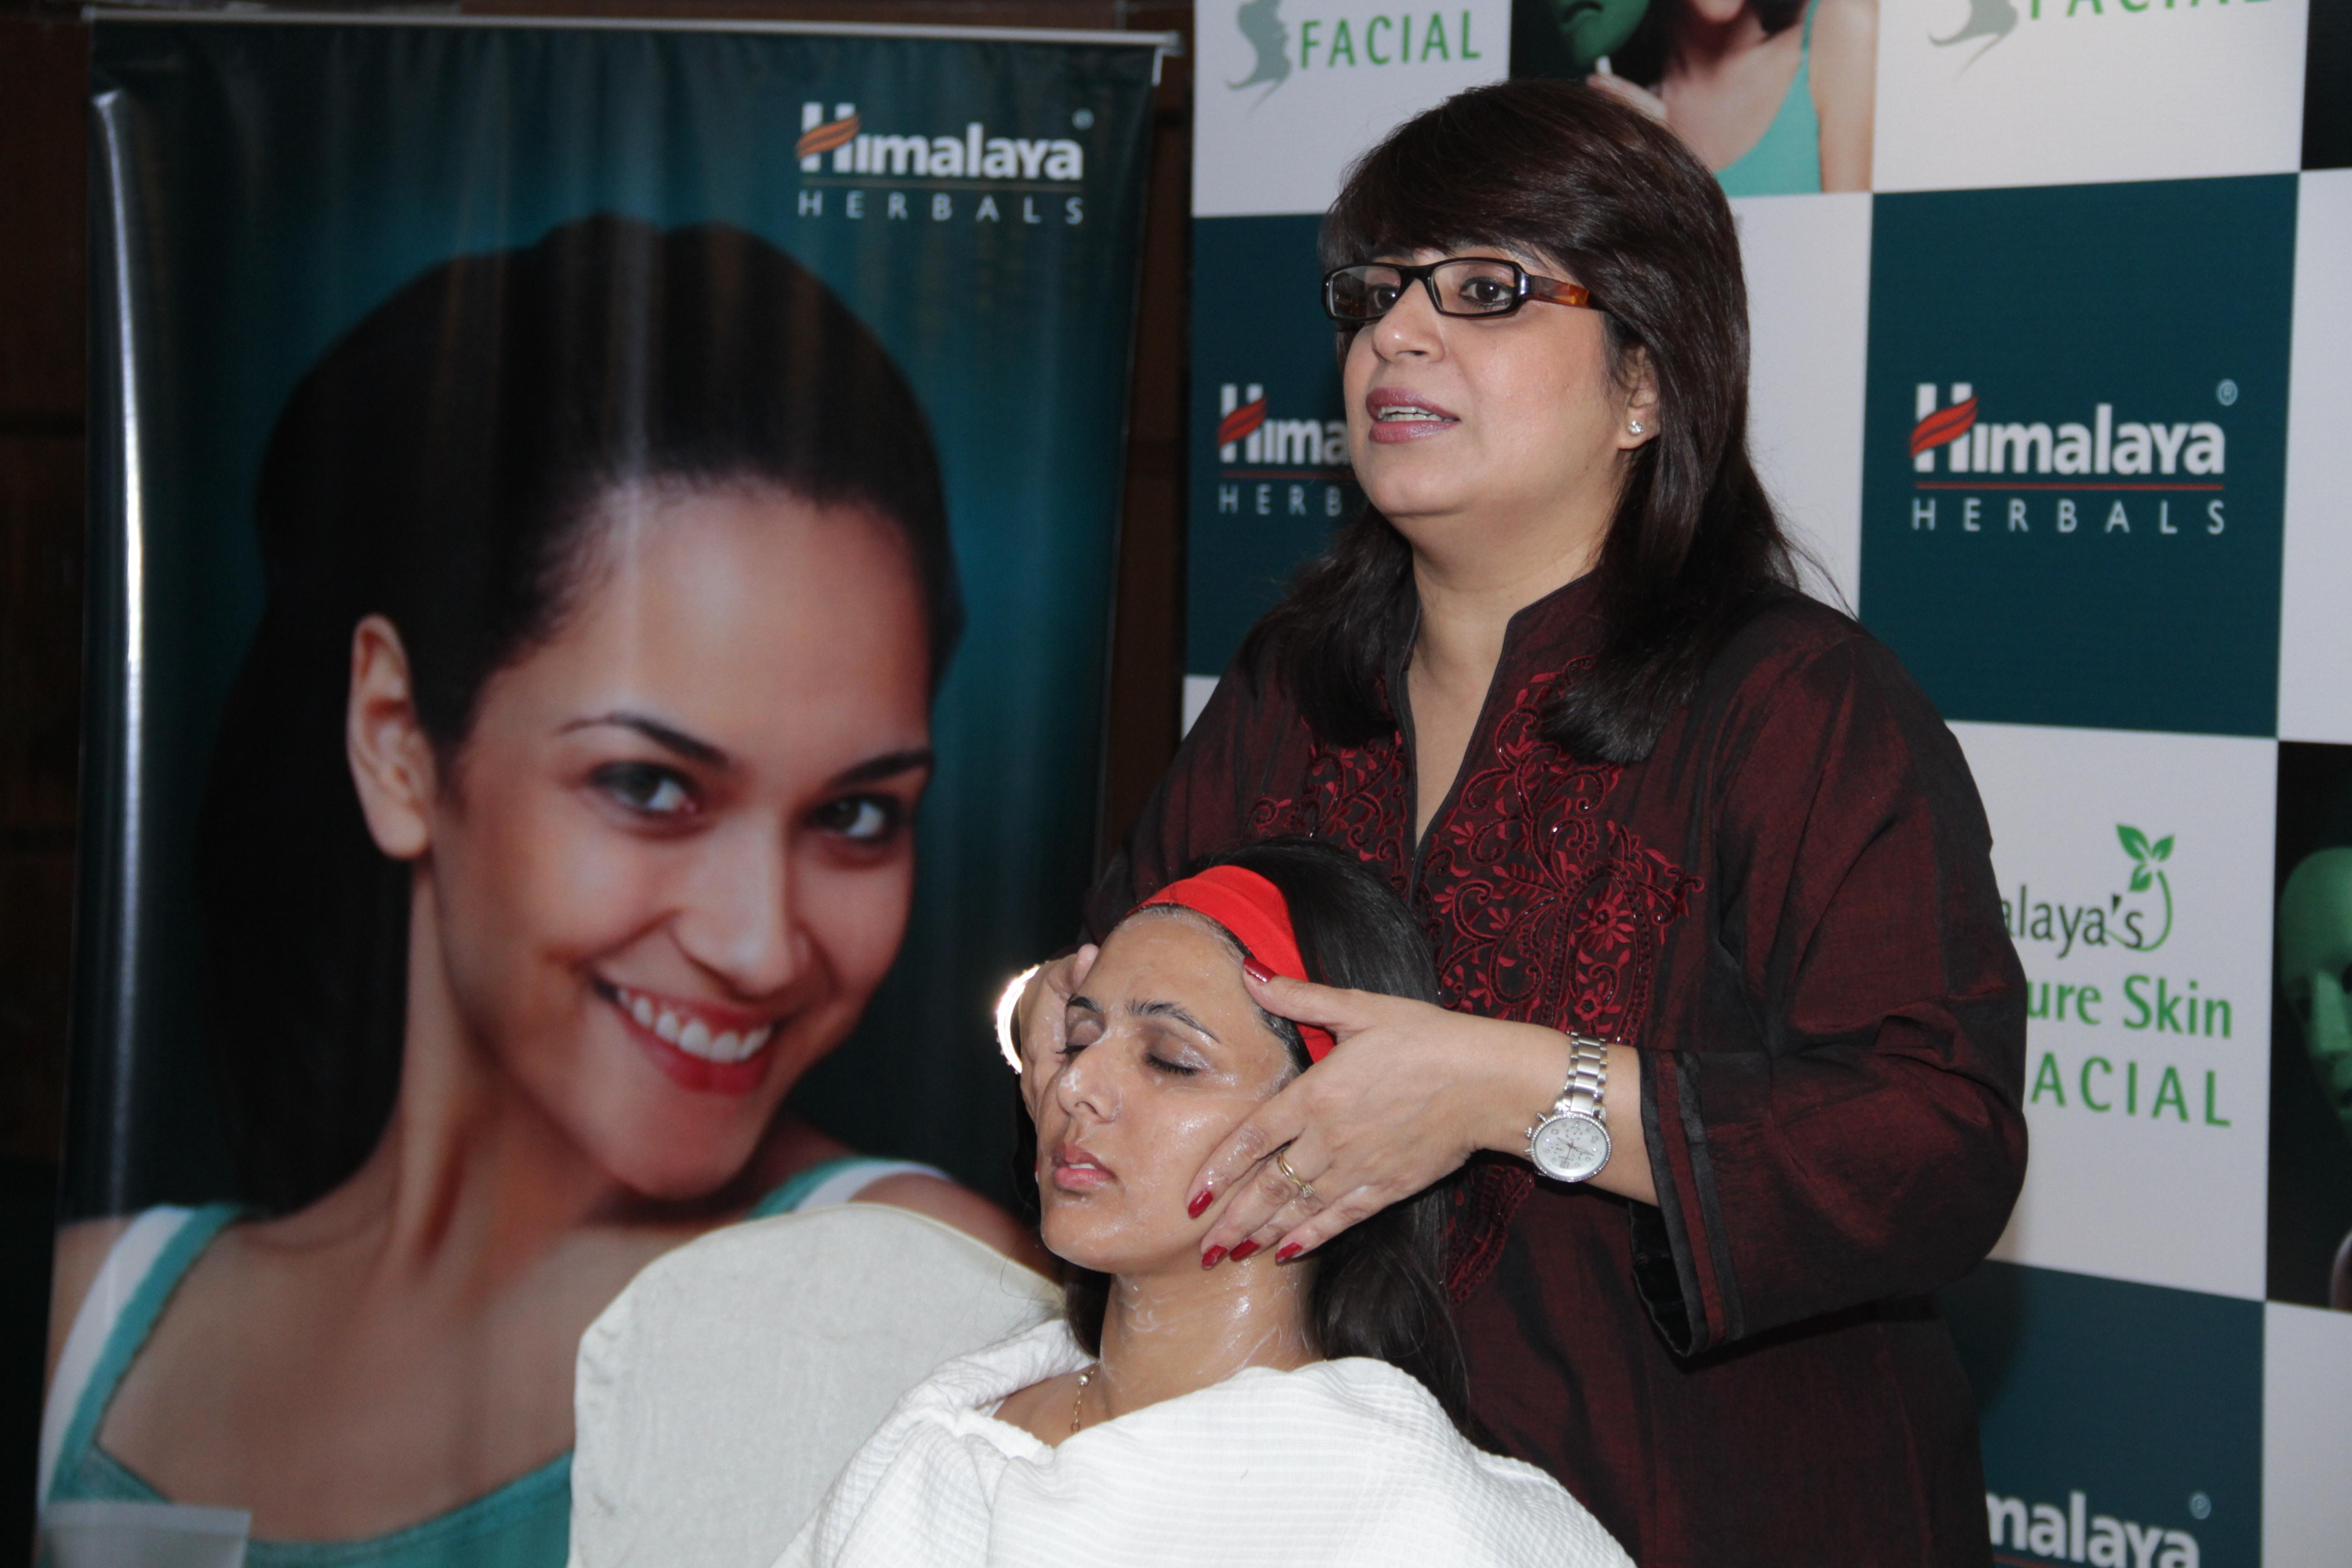 Dr. Rajeeka Kacheria giving final touches of Cleansing, Toning and Moisturizing (CTM) tips on a participant of the session